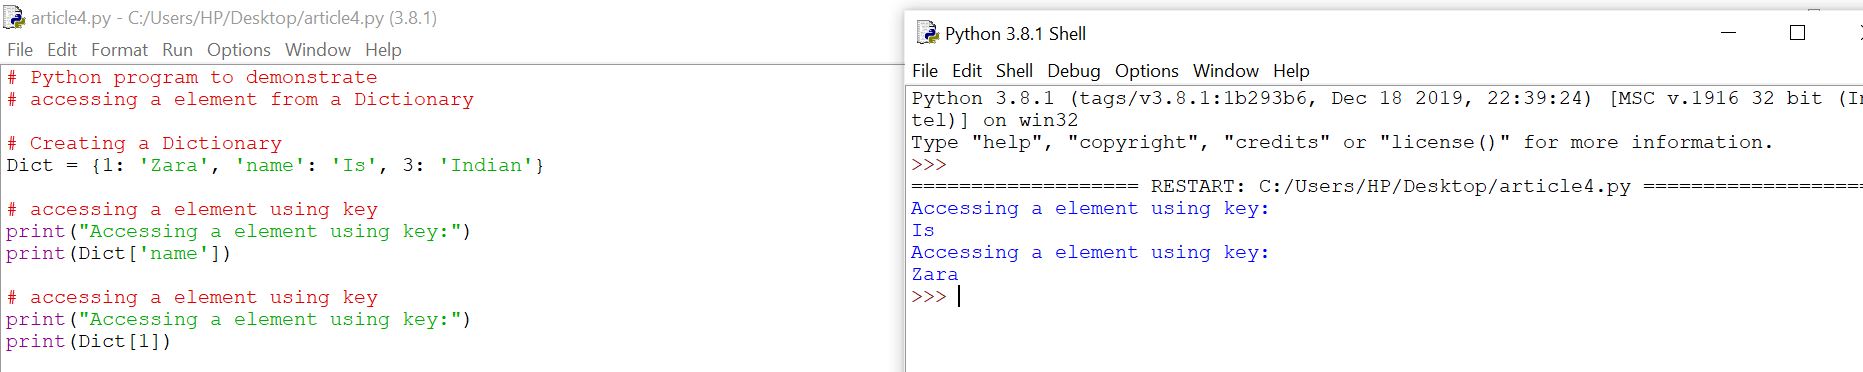 Accessing elements from a Dictionary